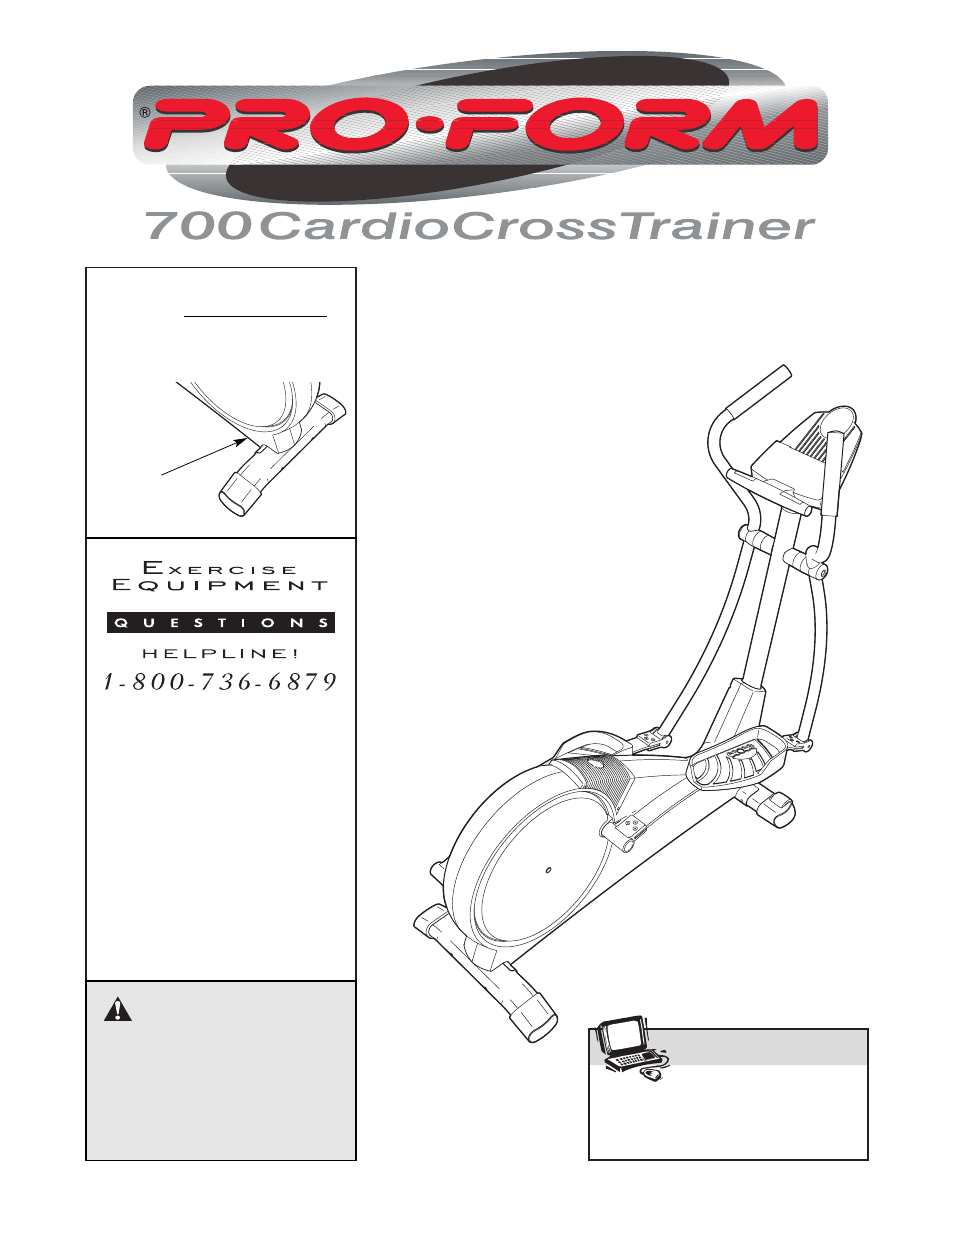 Proform 700 user manual   24 pages.